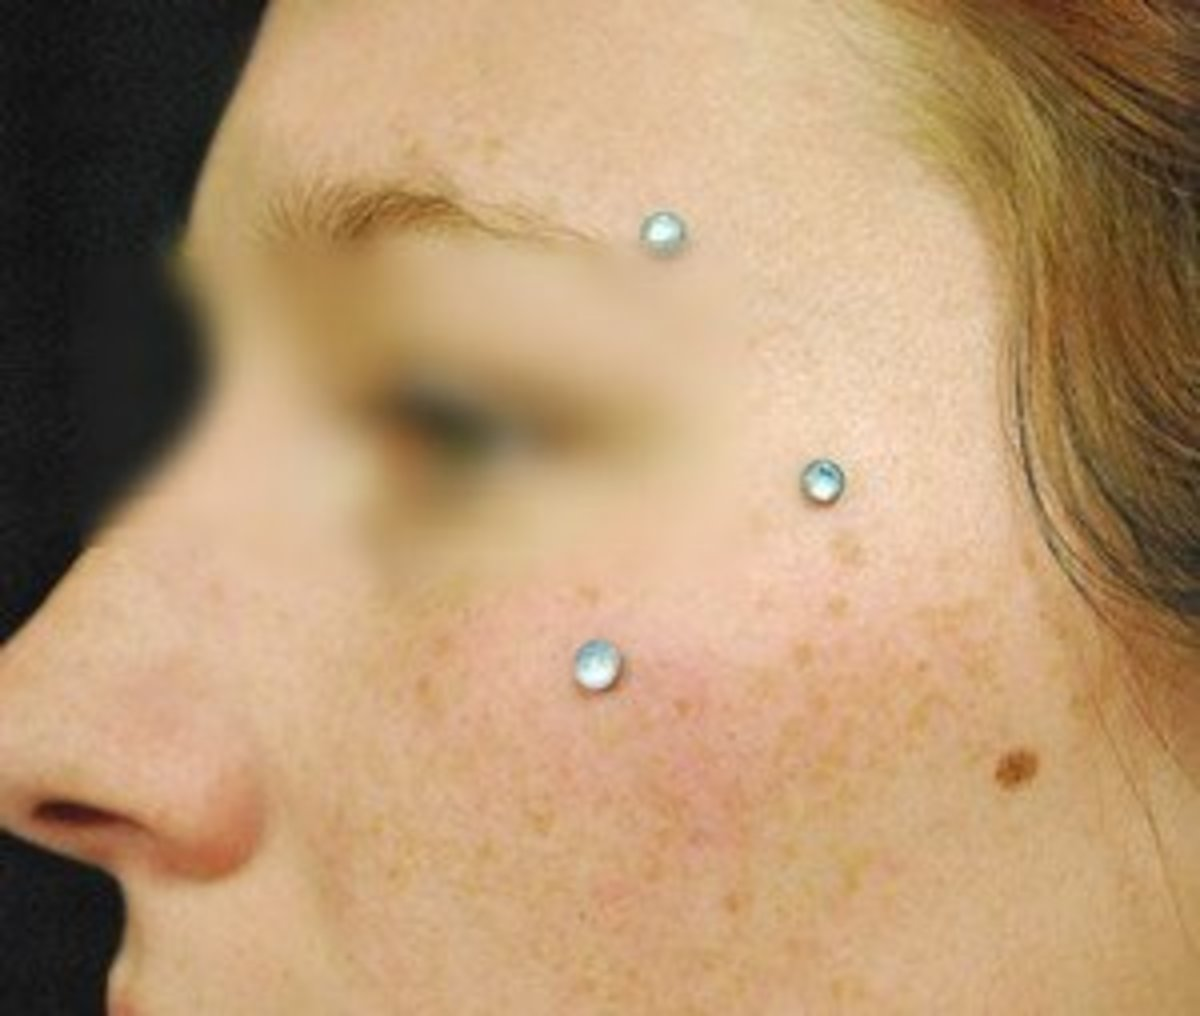 Clit piercing, labia piercings and clitoris rings